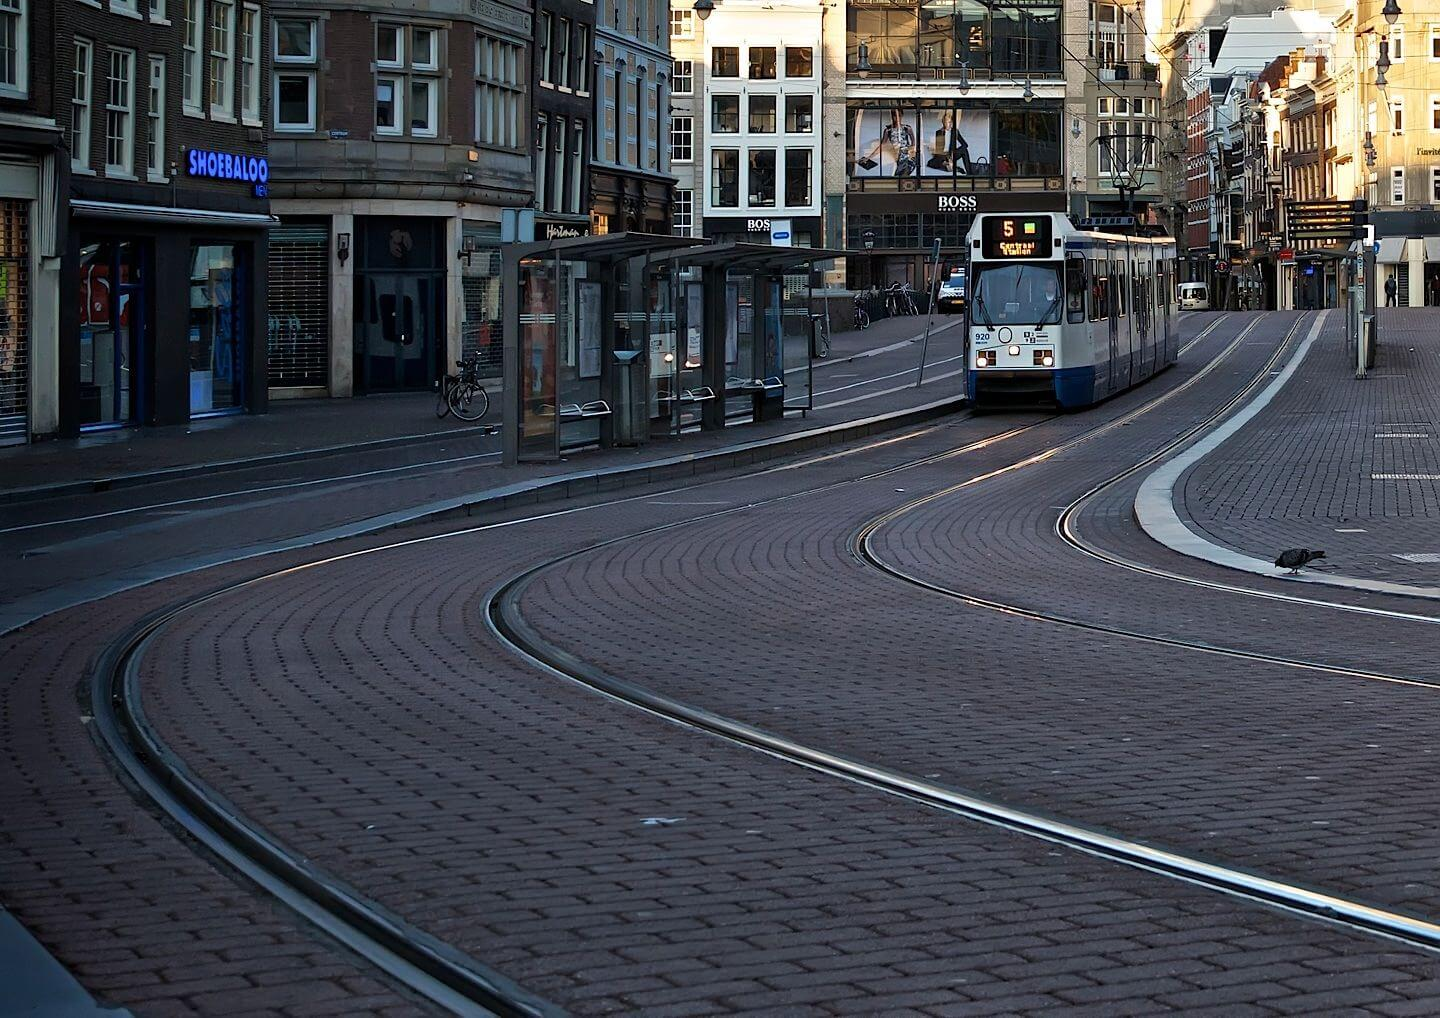 Tram on an empty Amsterdam street early in the morning